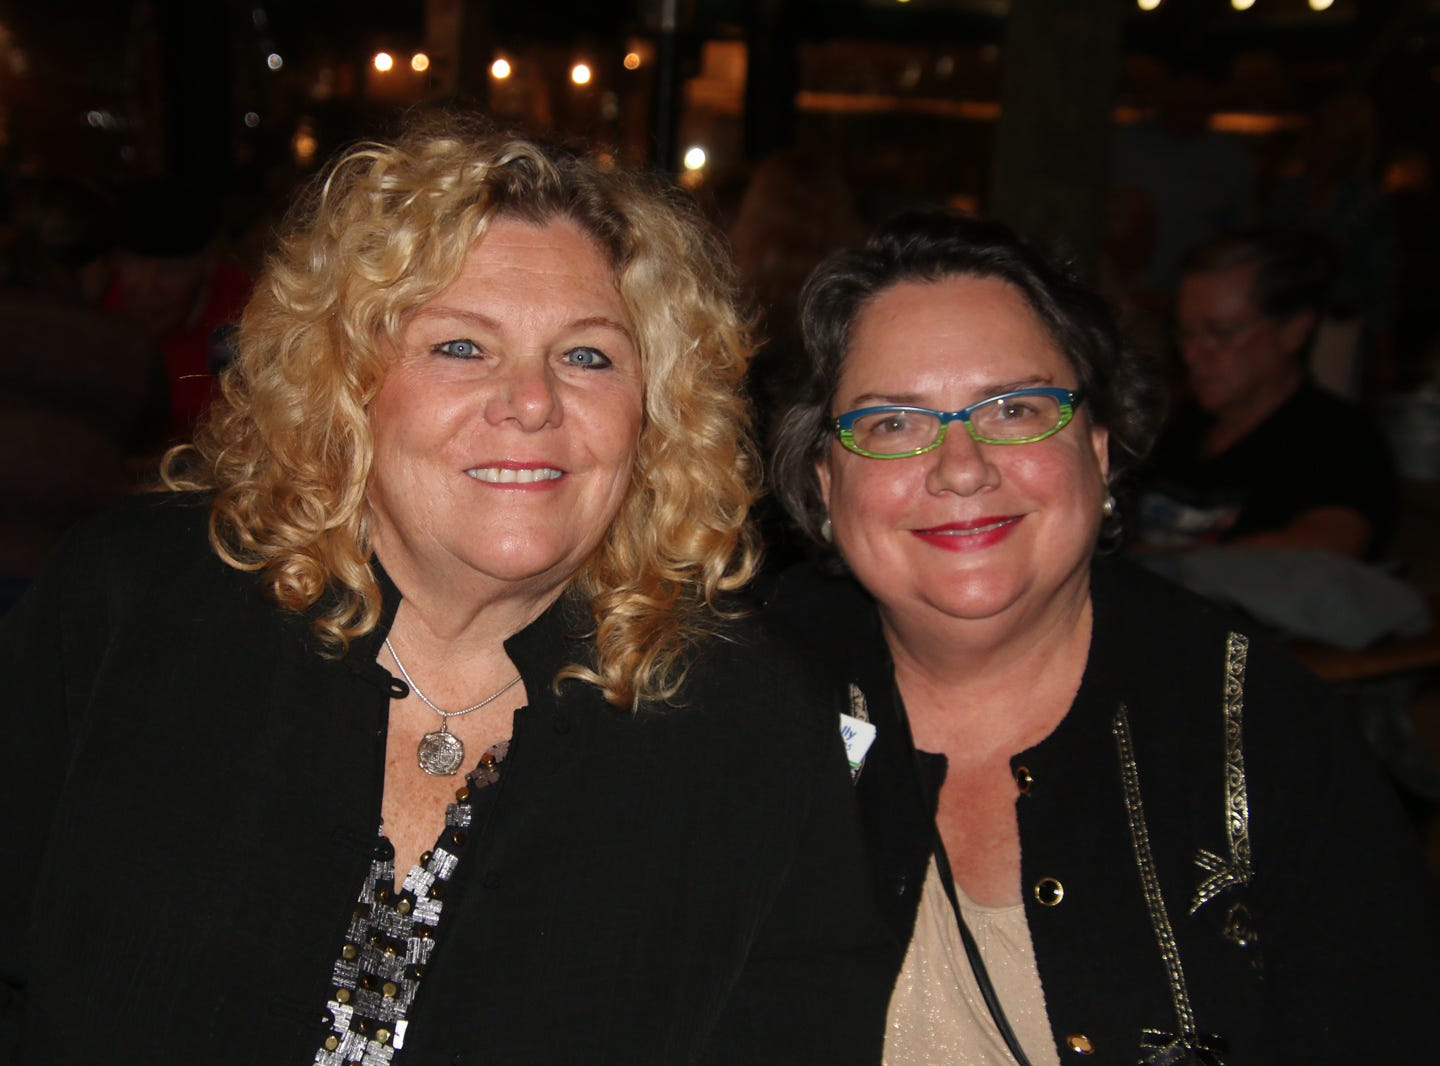 Anita Prentice, left, and Holly Theuns enjoy the music at the Fort Pierce Jazz & Blues Society's  Ring-a-Ding-Ding Holiday Fling at Summer Crush Vineyard & Winery.